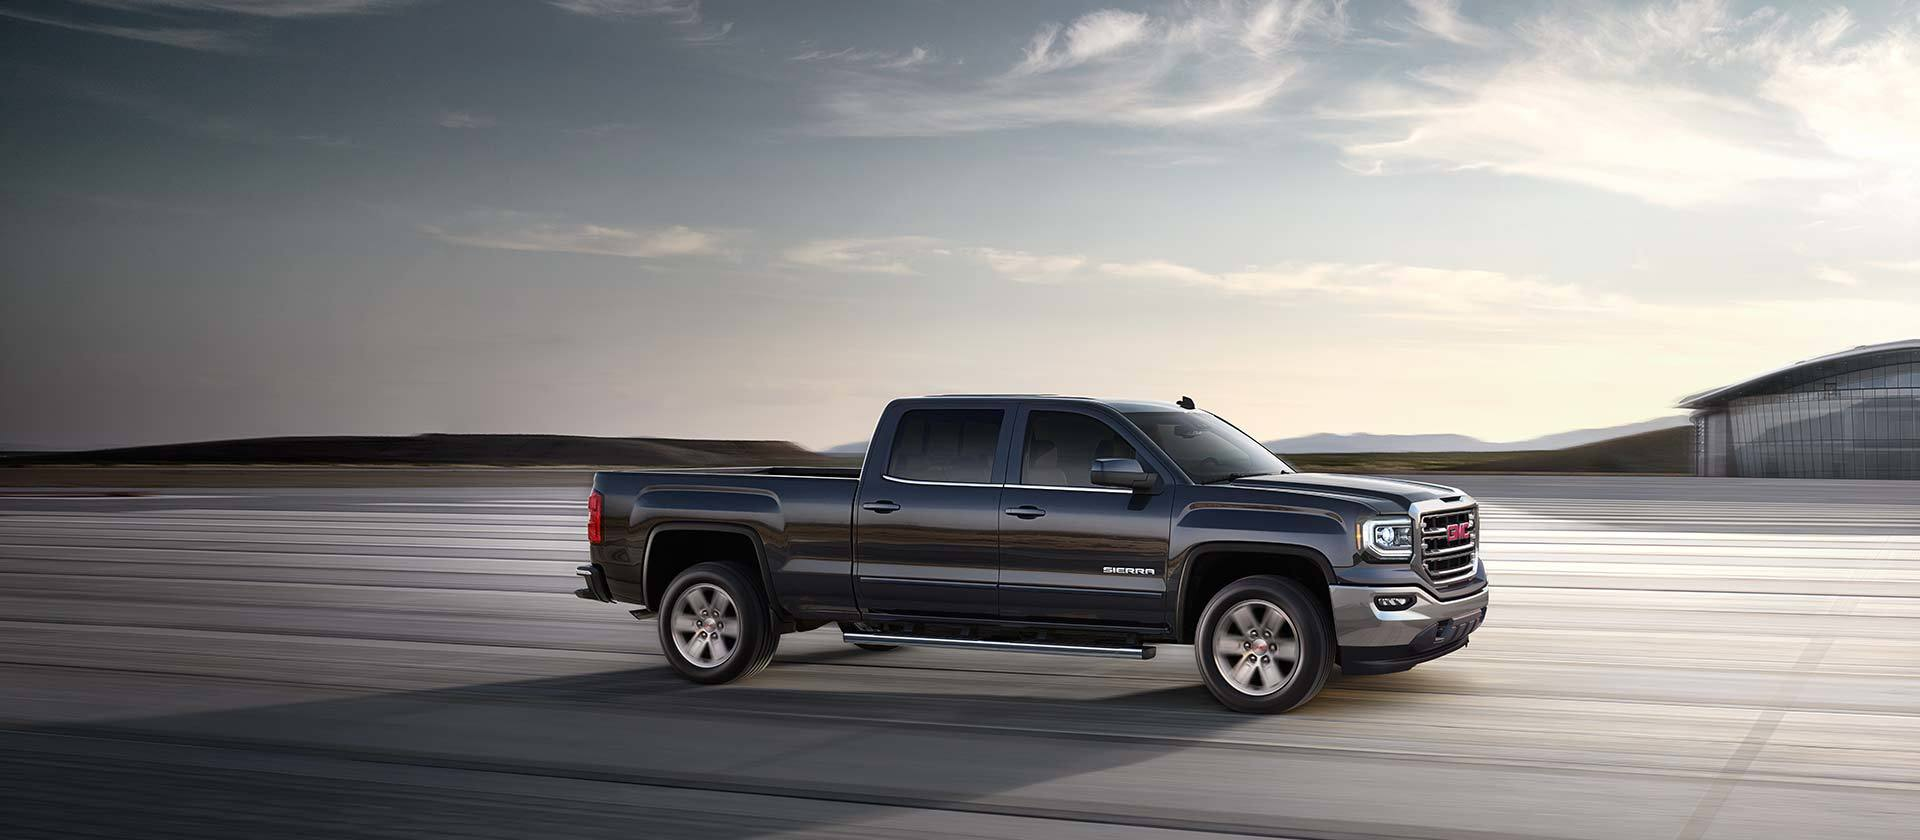 New GMC Sierra 1500   Buy  Lease  or Finance   Gainesville  FL 32609 New GMC Sierra 1500 Exterior Features